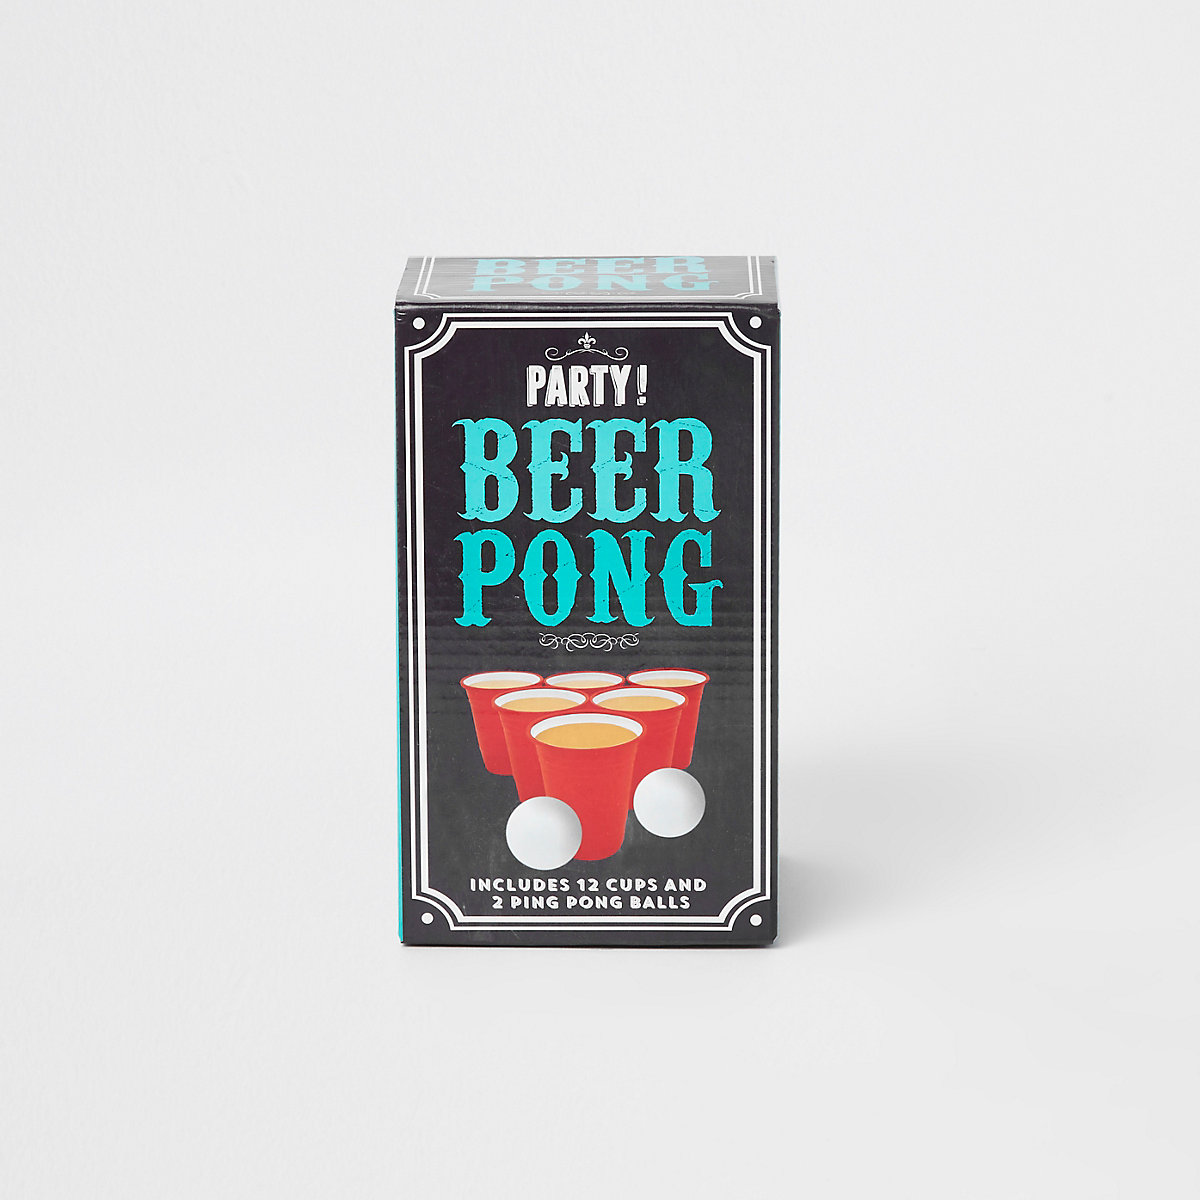 Party beer pong